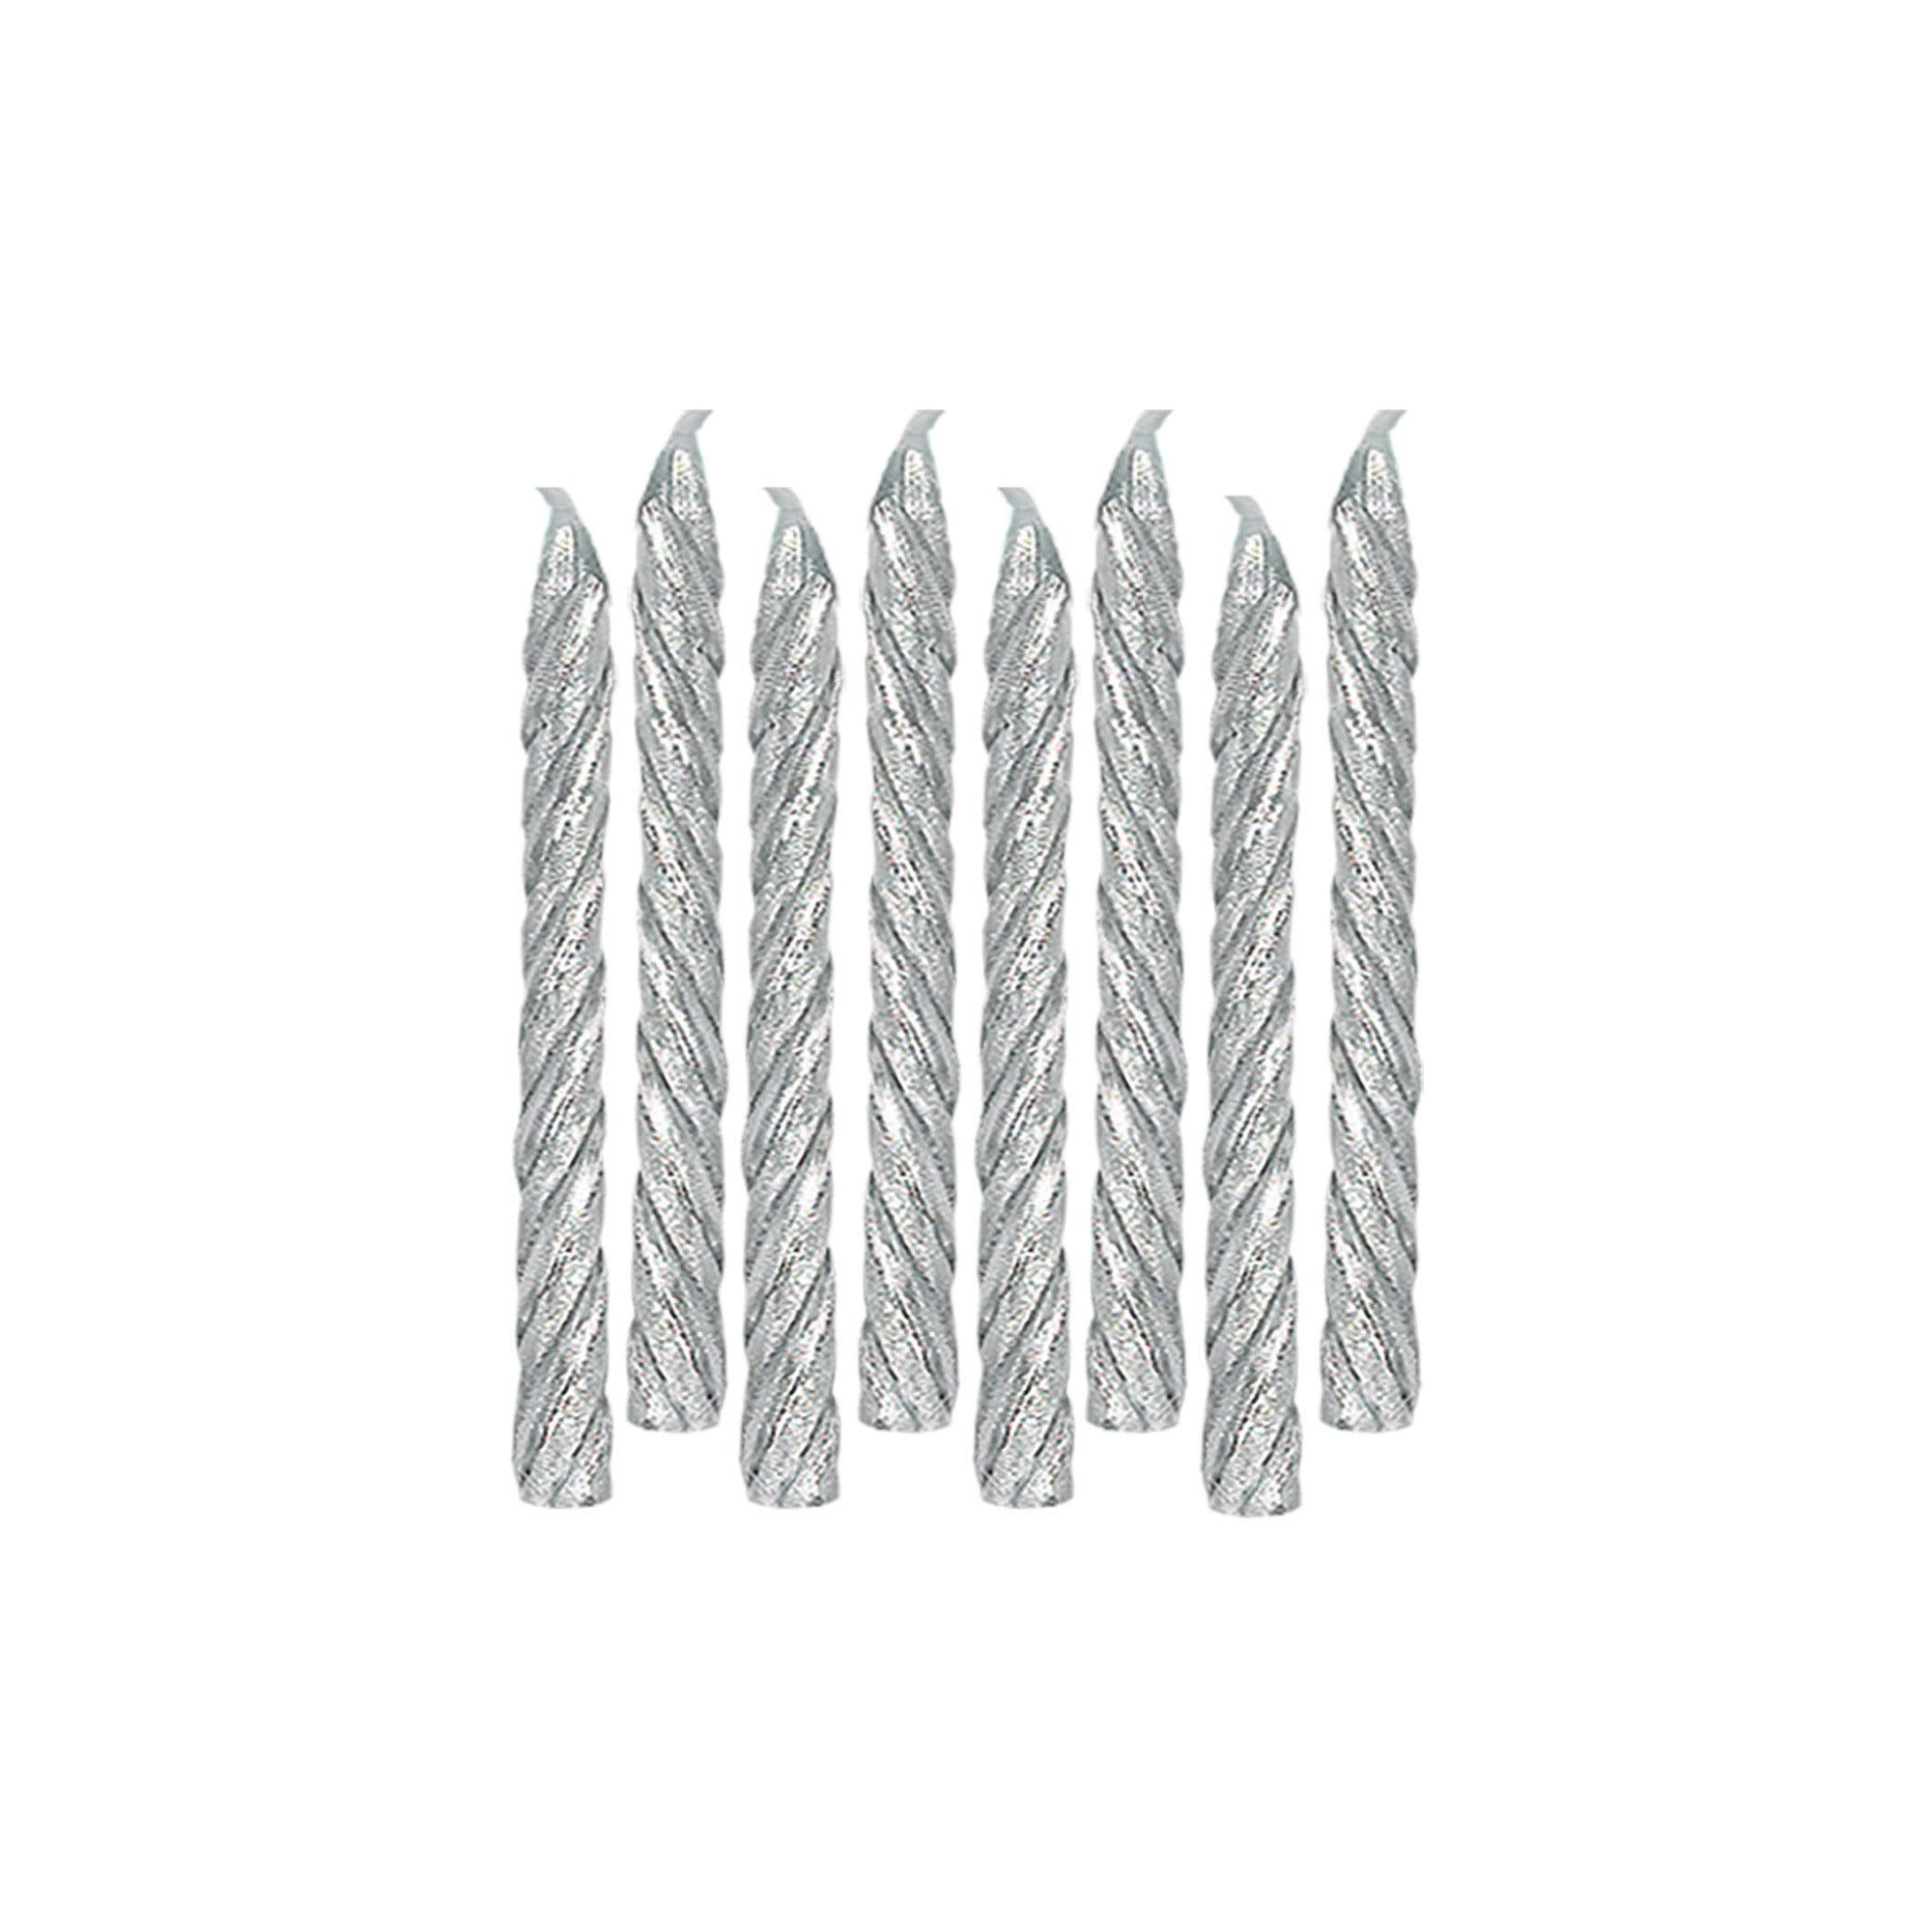 Large Spiral Candles - Silver